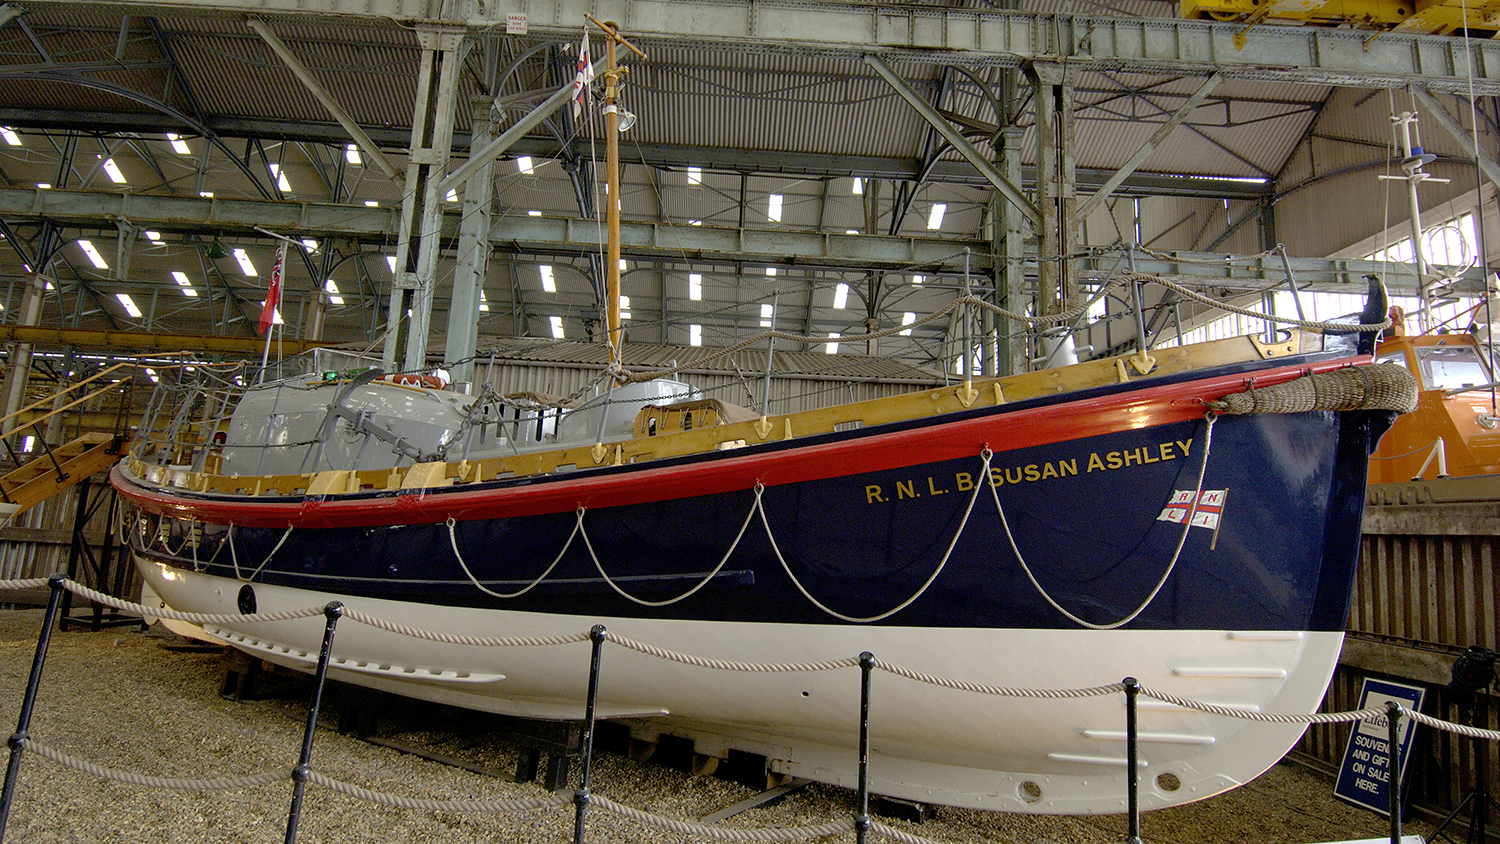 Susan Ashley lifeboat at The Historic Lifeboat Collection in Chatham, Kent.